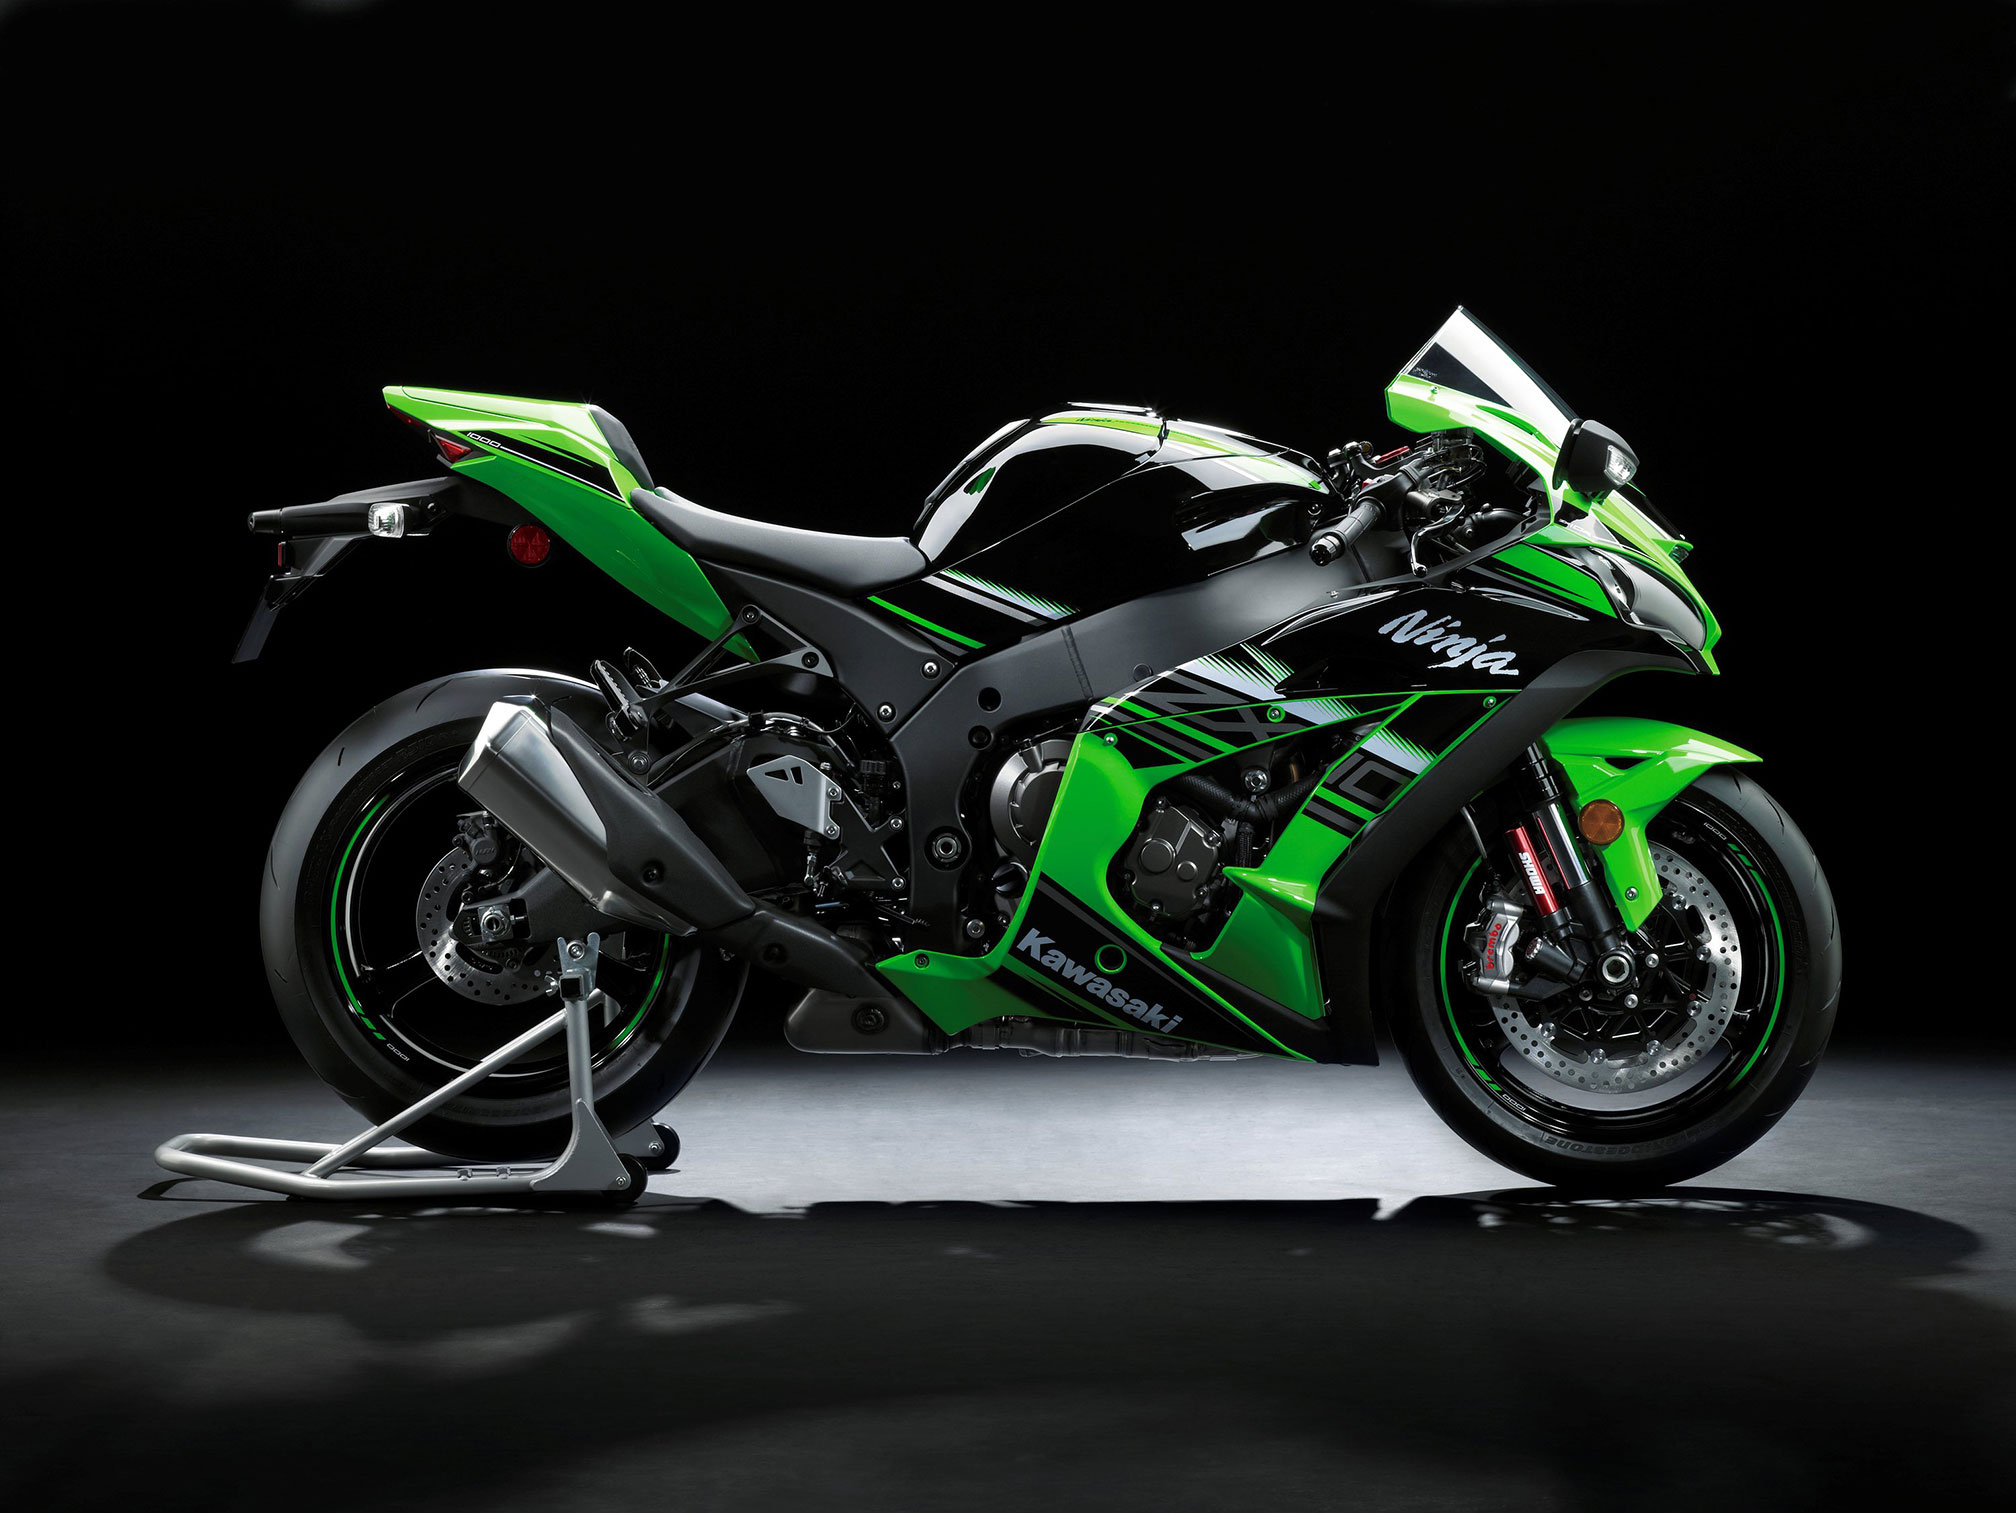 2016 Yamaha R1 Wallpaper   HD Wallpapers Backgrounds of Your Choice 2016x1513